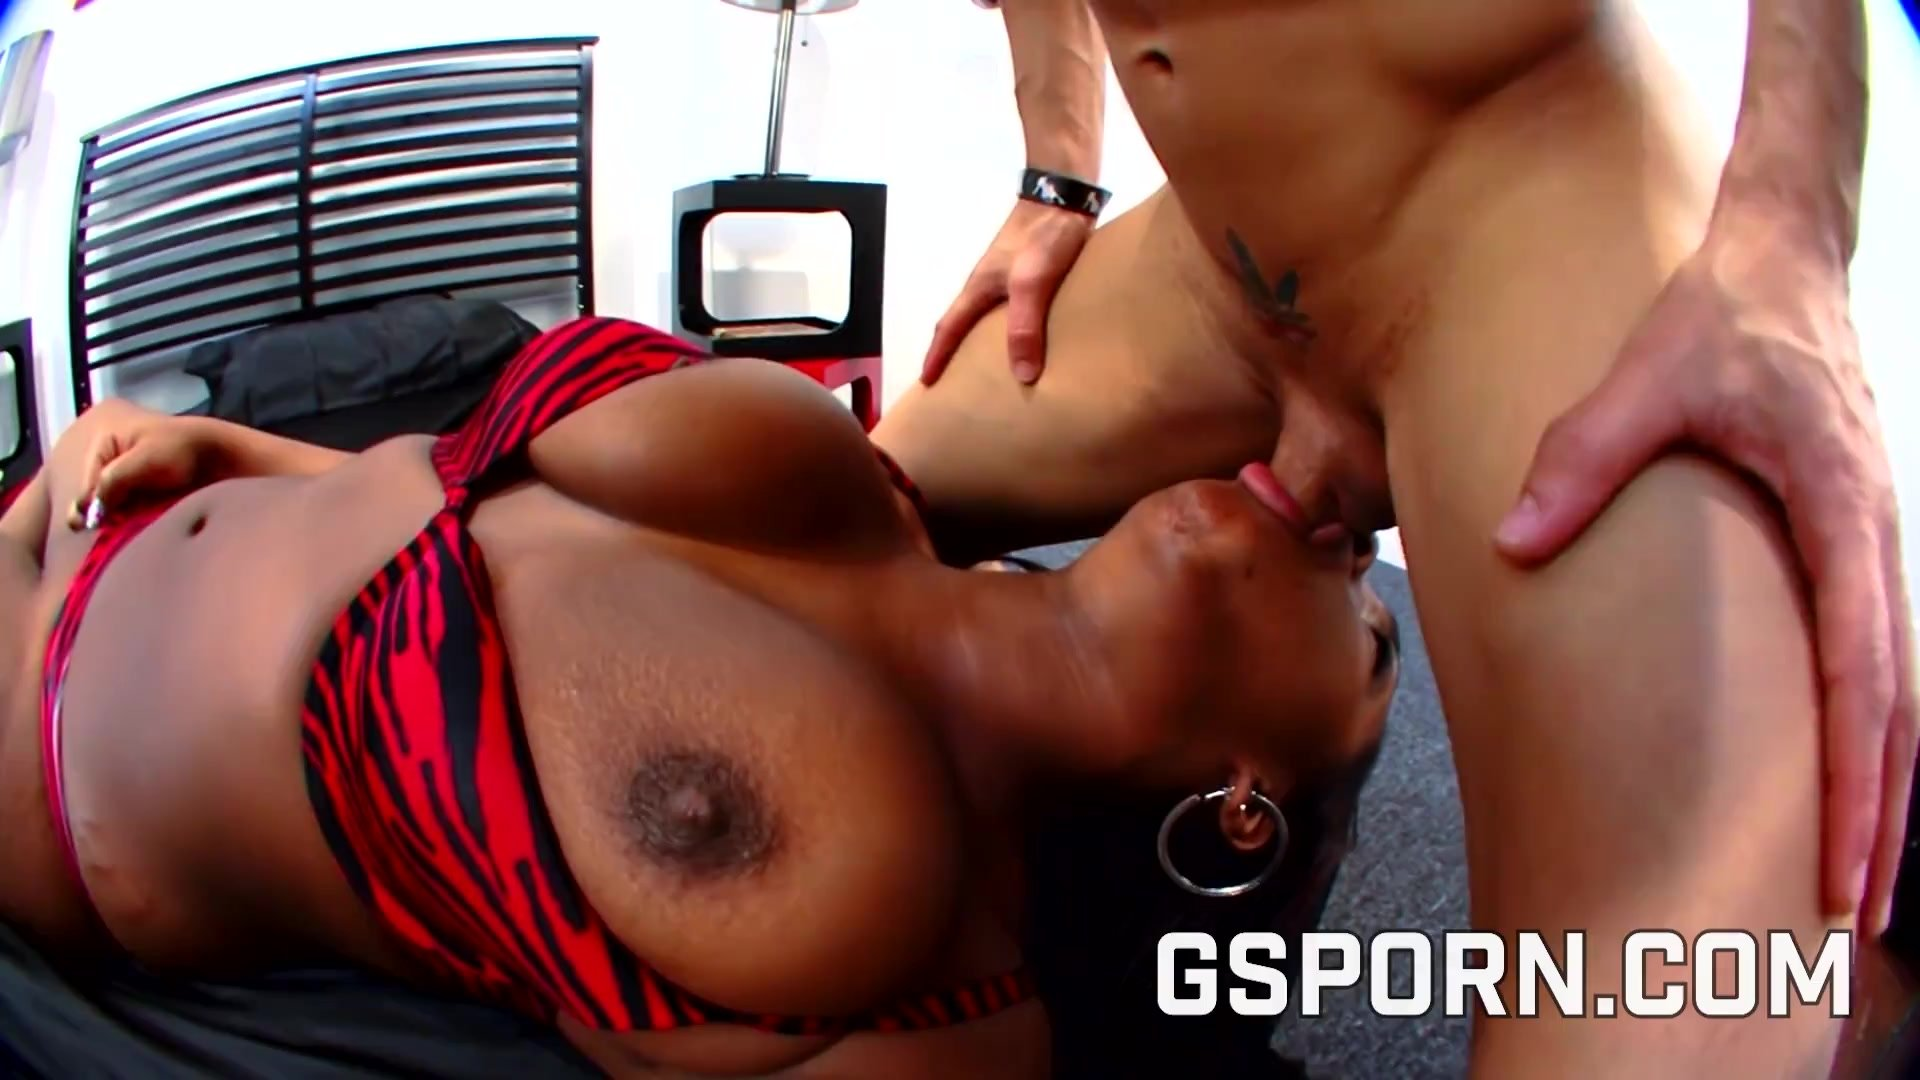 Black milf with big natural tits fucking hard on the bed